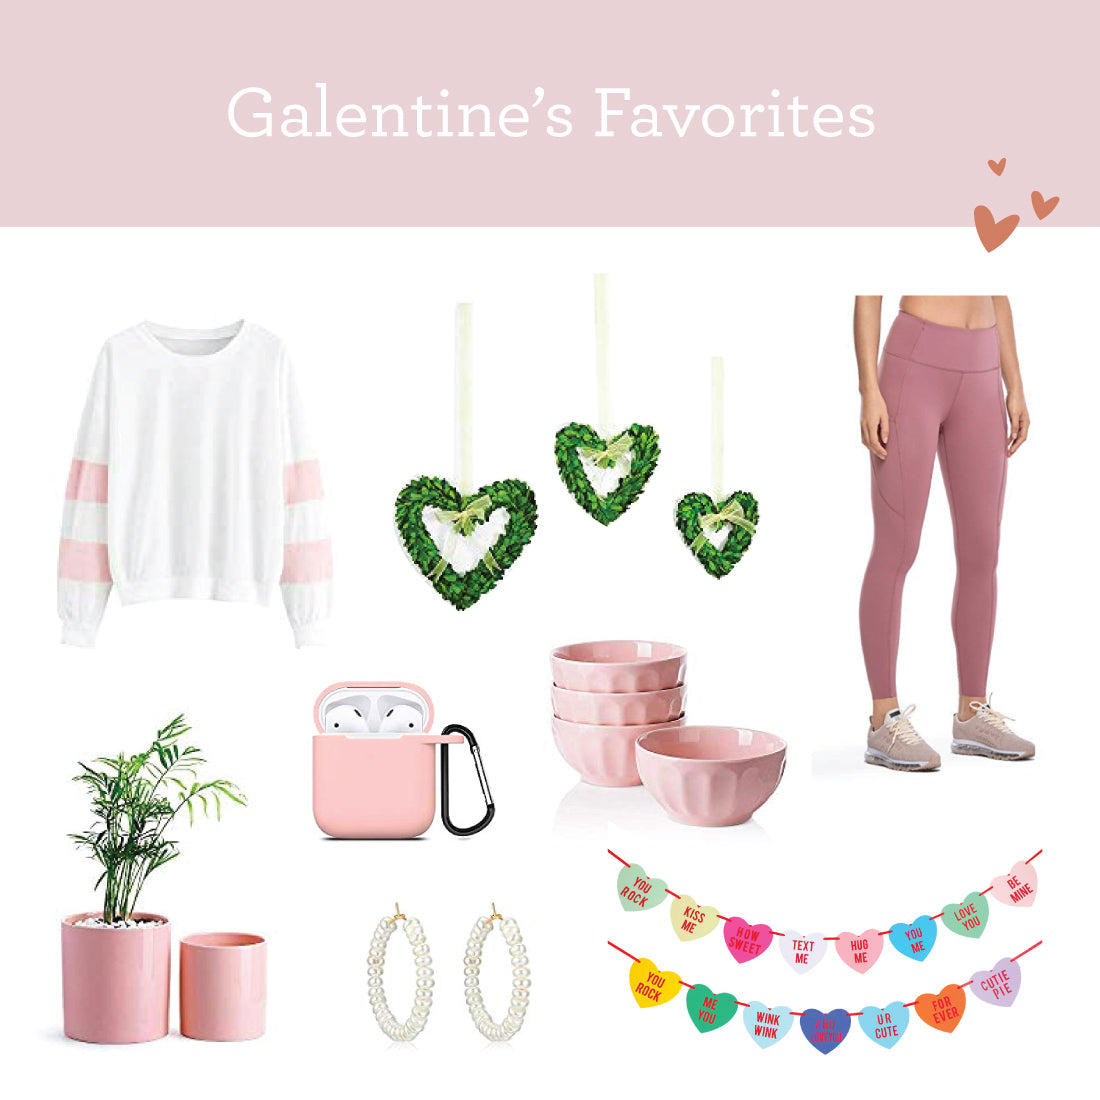 Galentine's Favorites Gift Guide